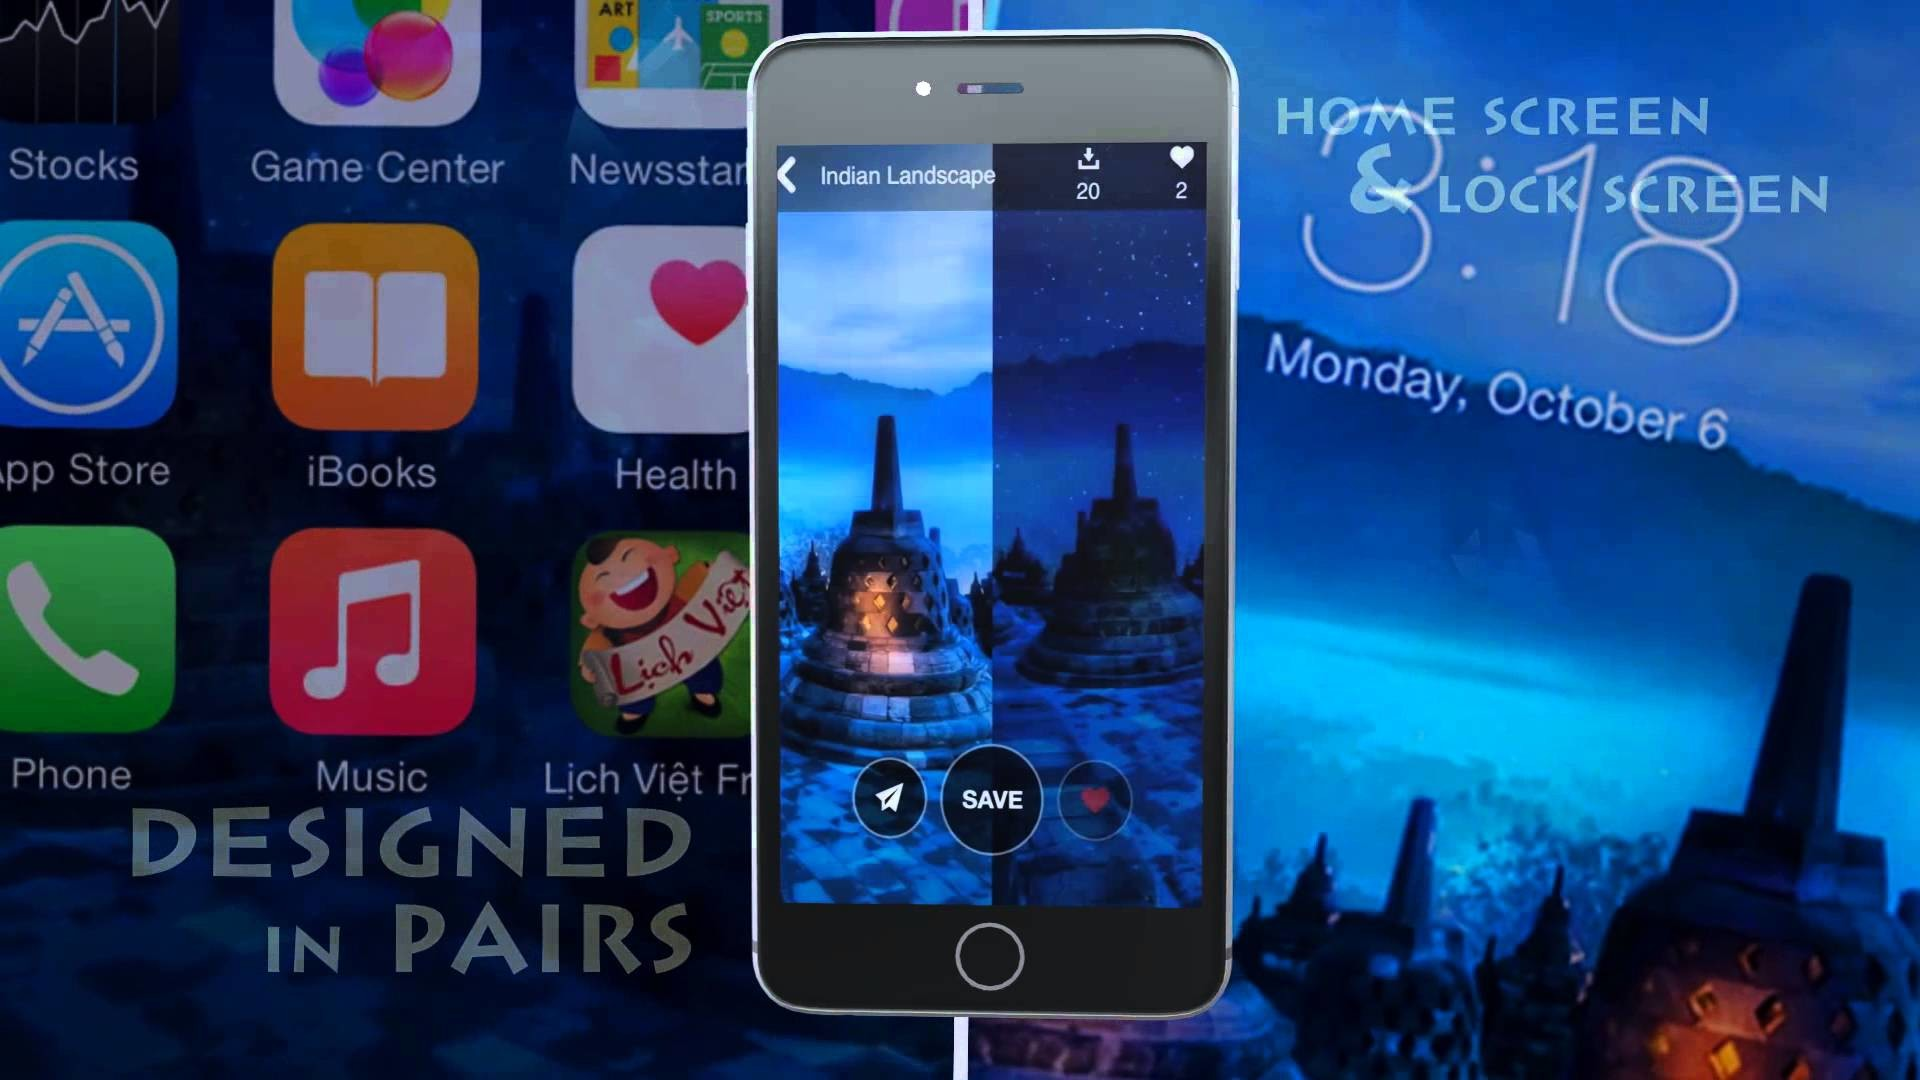 Res: 1920x1080, Wallpaper - Cool Home & Lock Screen for iPhone & iPad of PPCLINK Software -  YouTube